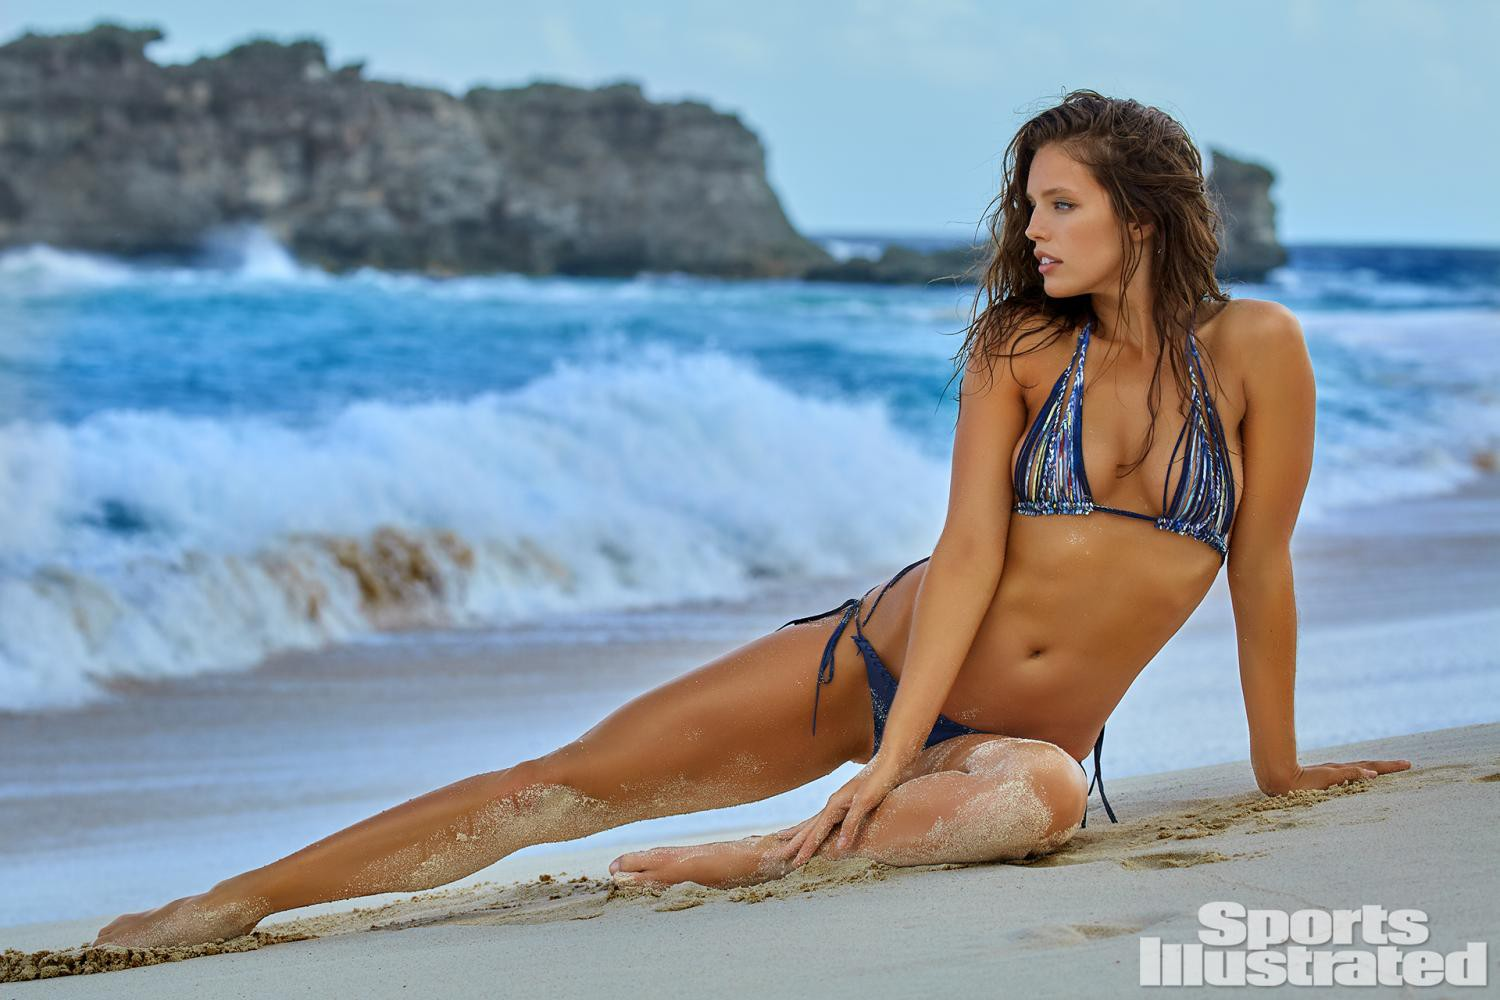 ... 1500 × 1000 Emily DiDonato – Sports Illustrated Swimsuit Issue 2016